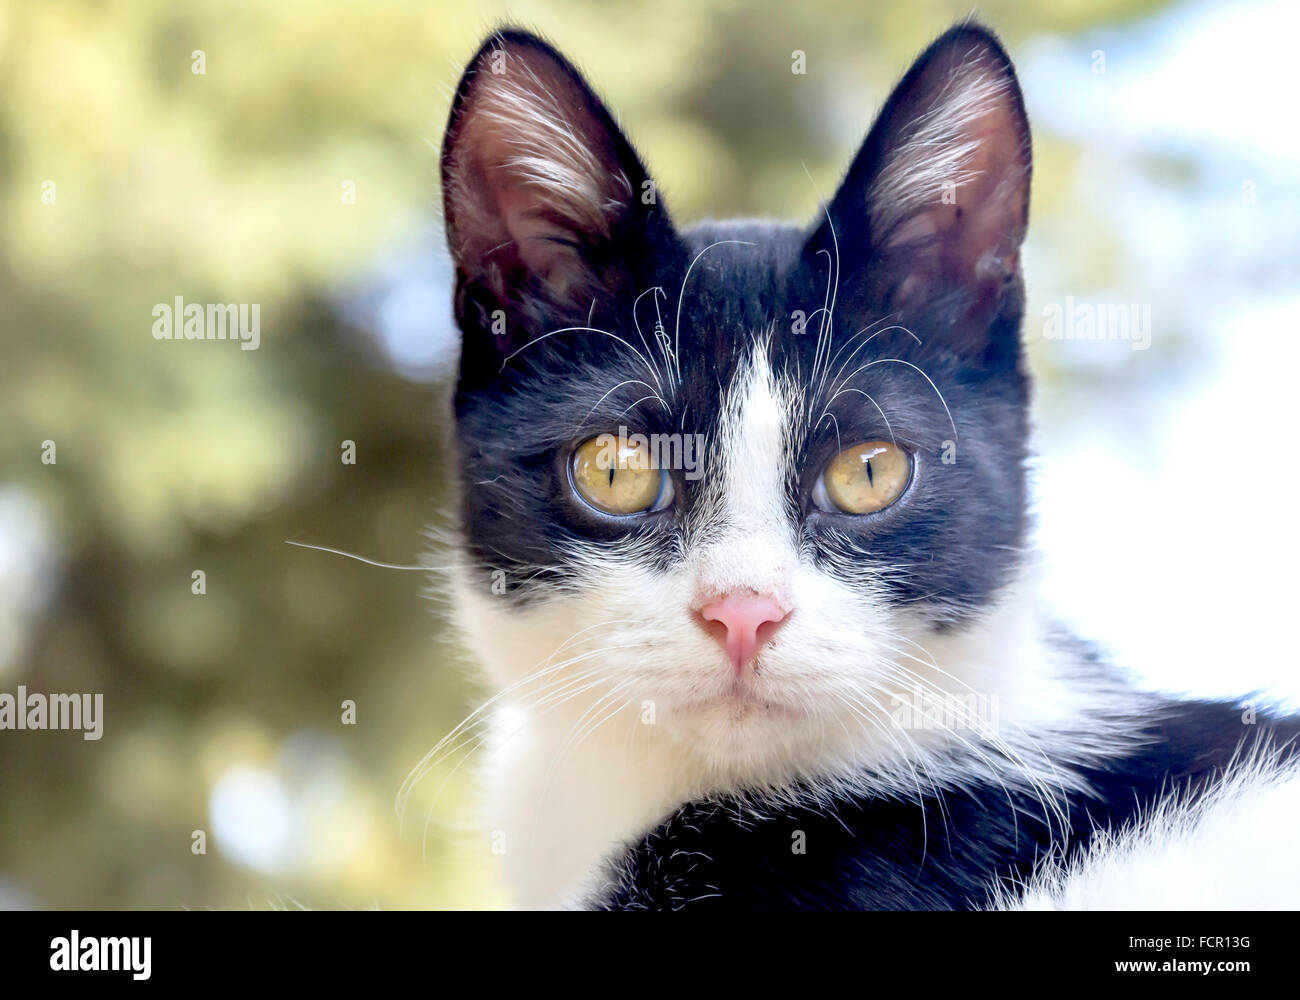 Black And White Cat - Stock Image